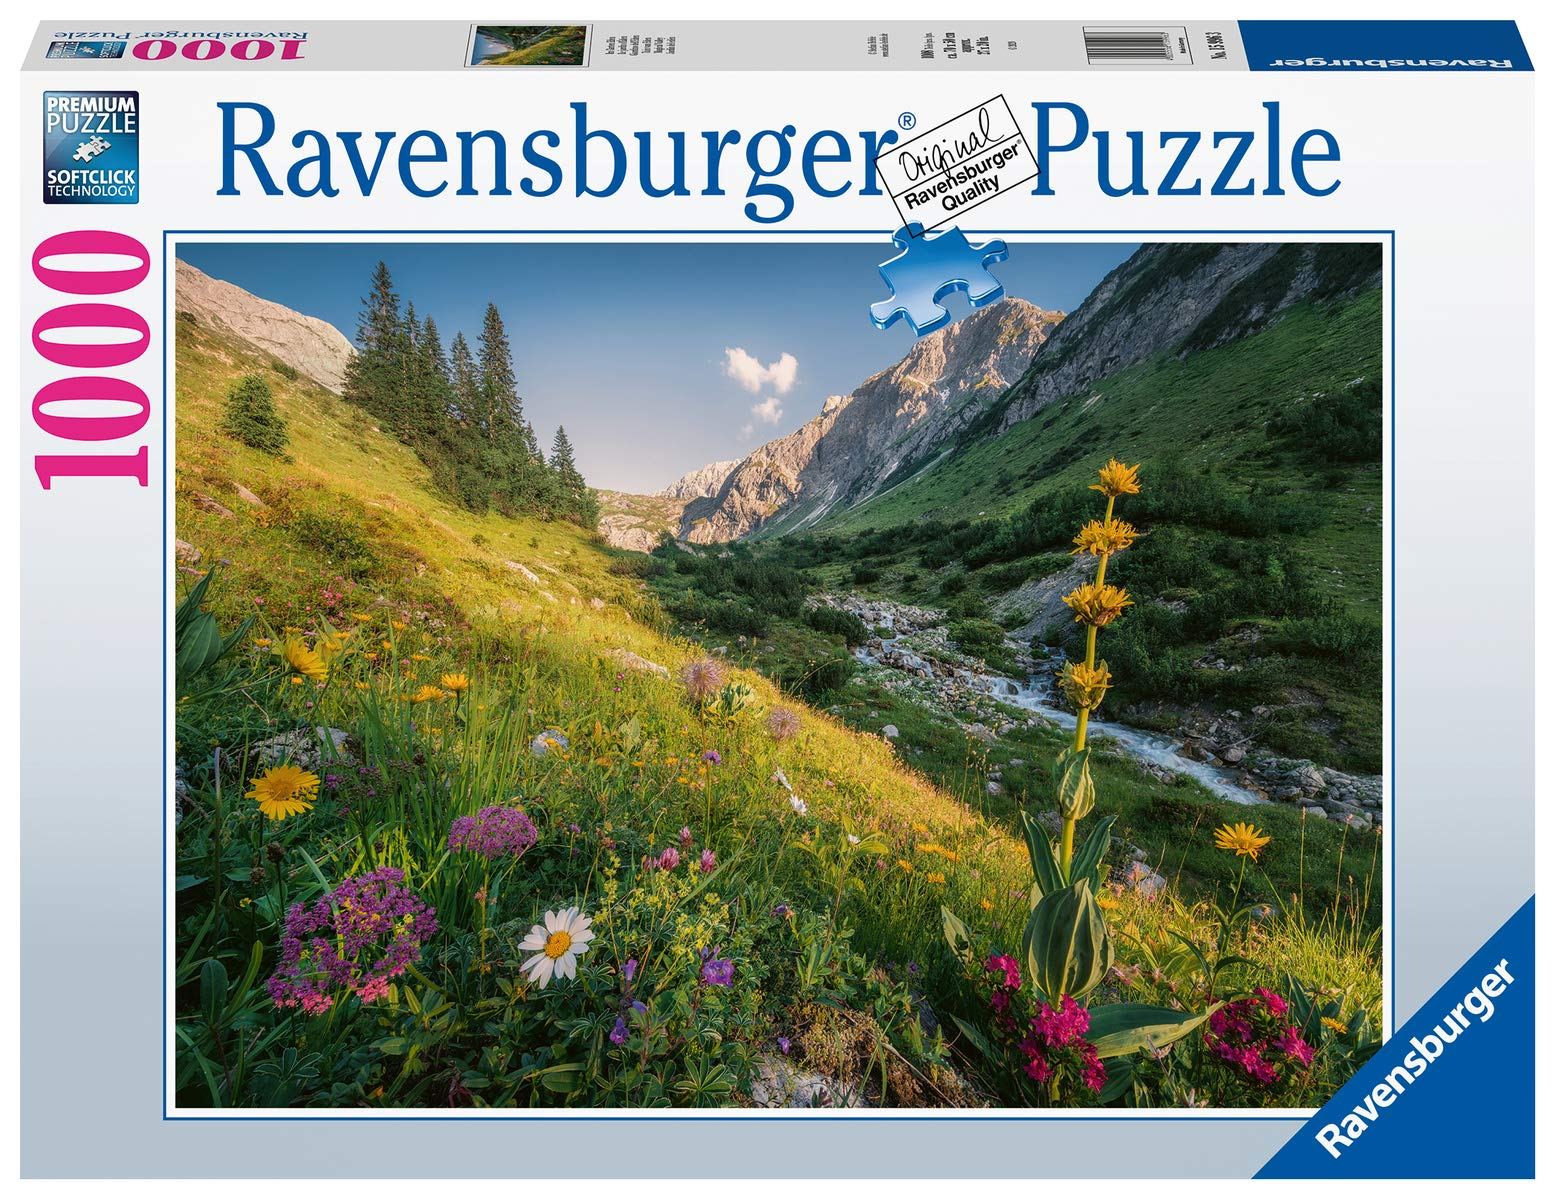 Ravensburger Magical Valley 1000 Piece Jigsaw Puzzle for Adults & for Kids Age 12 and Up